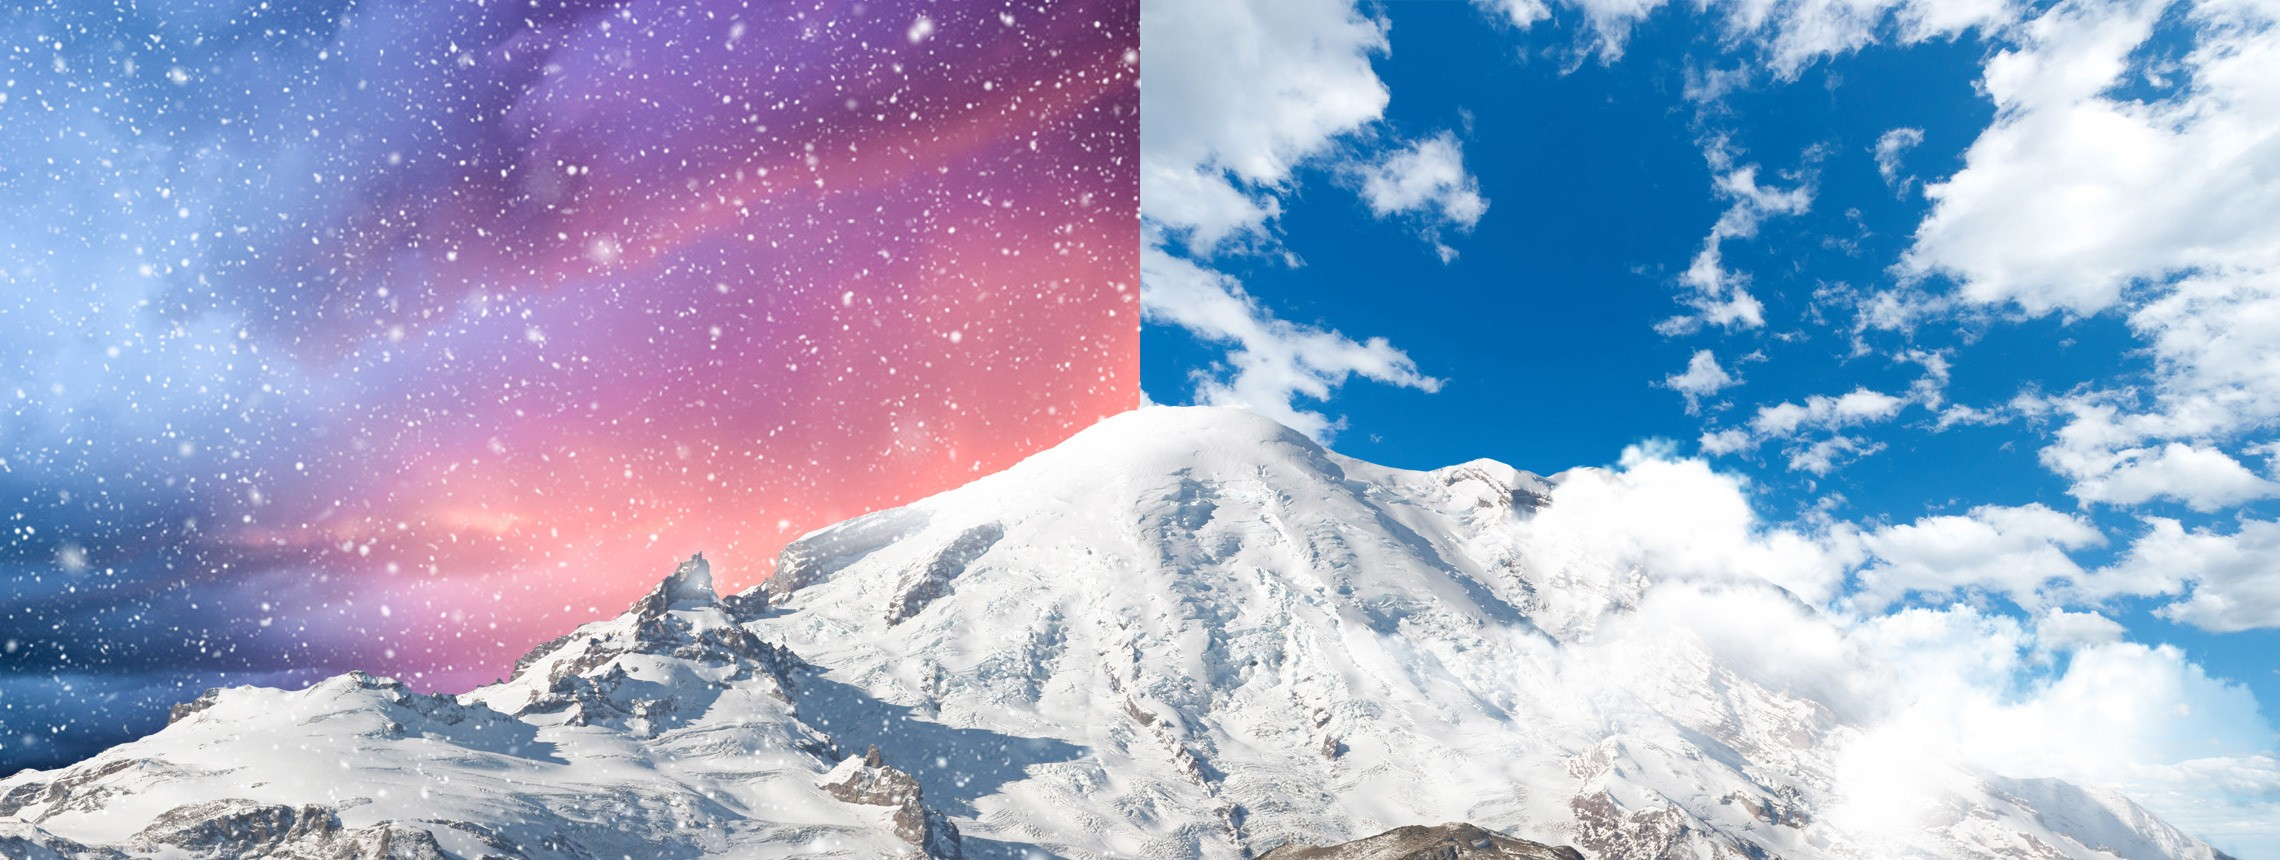 A Basic Guide to Compositing in Photoshop